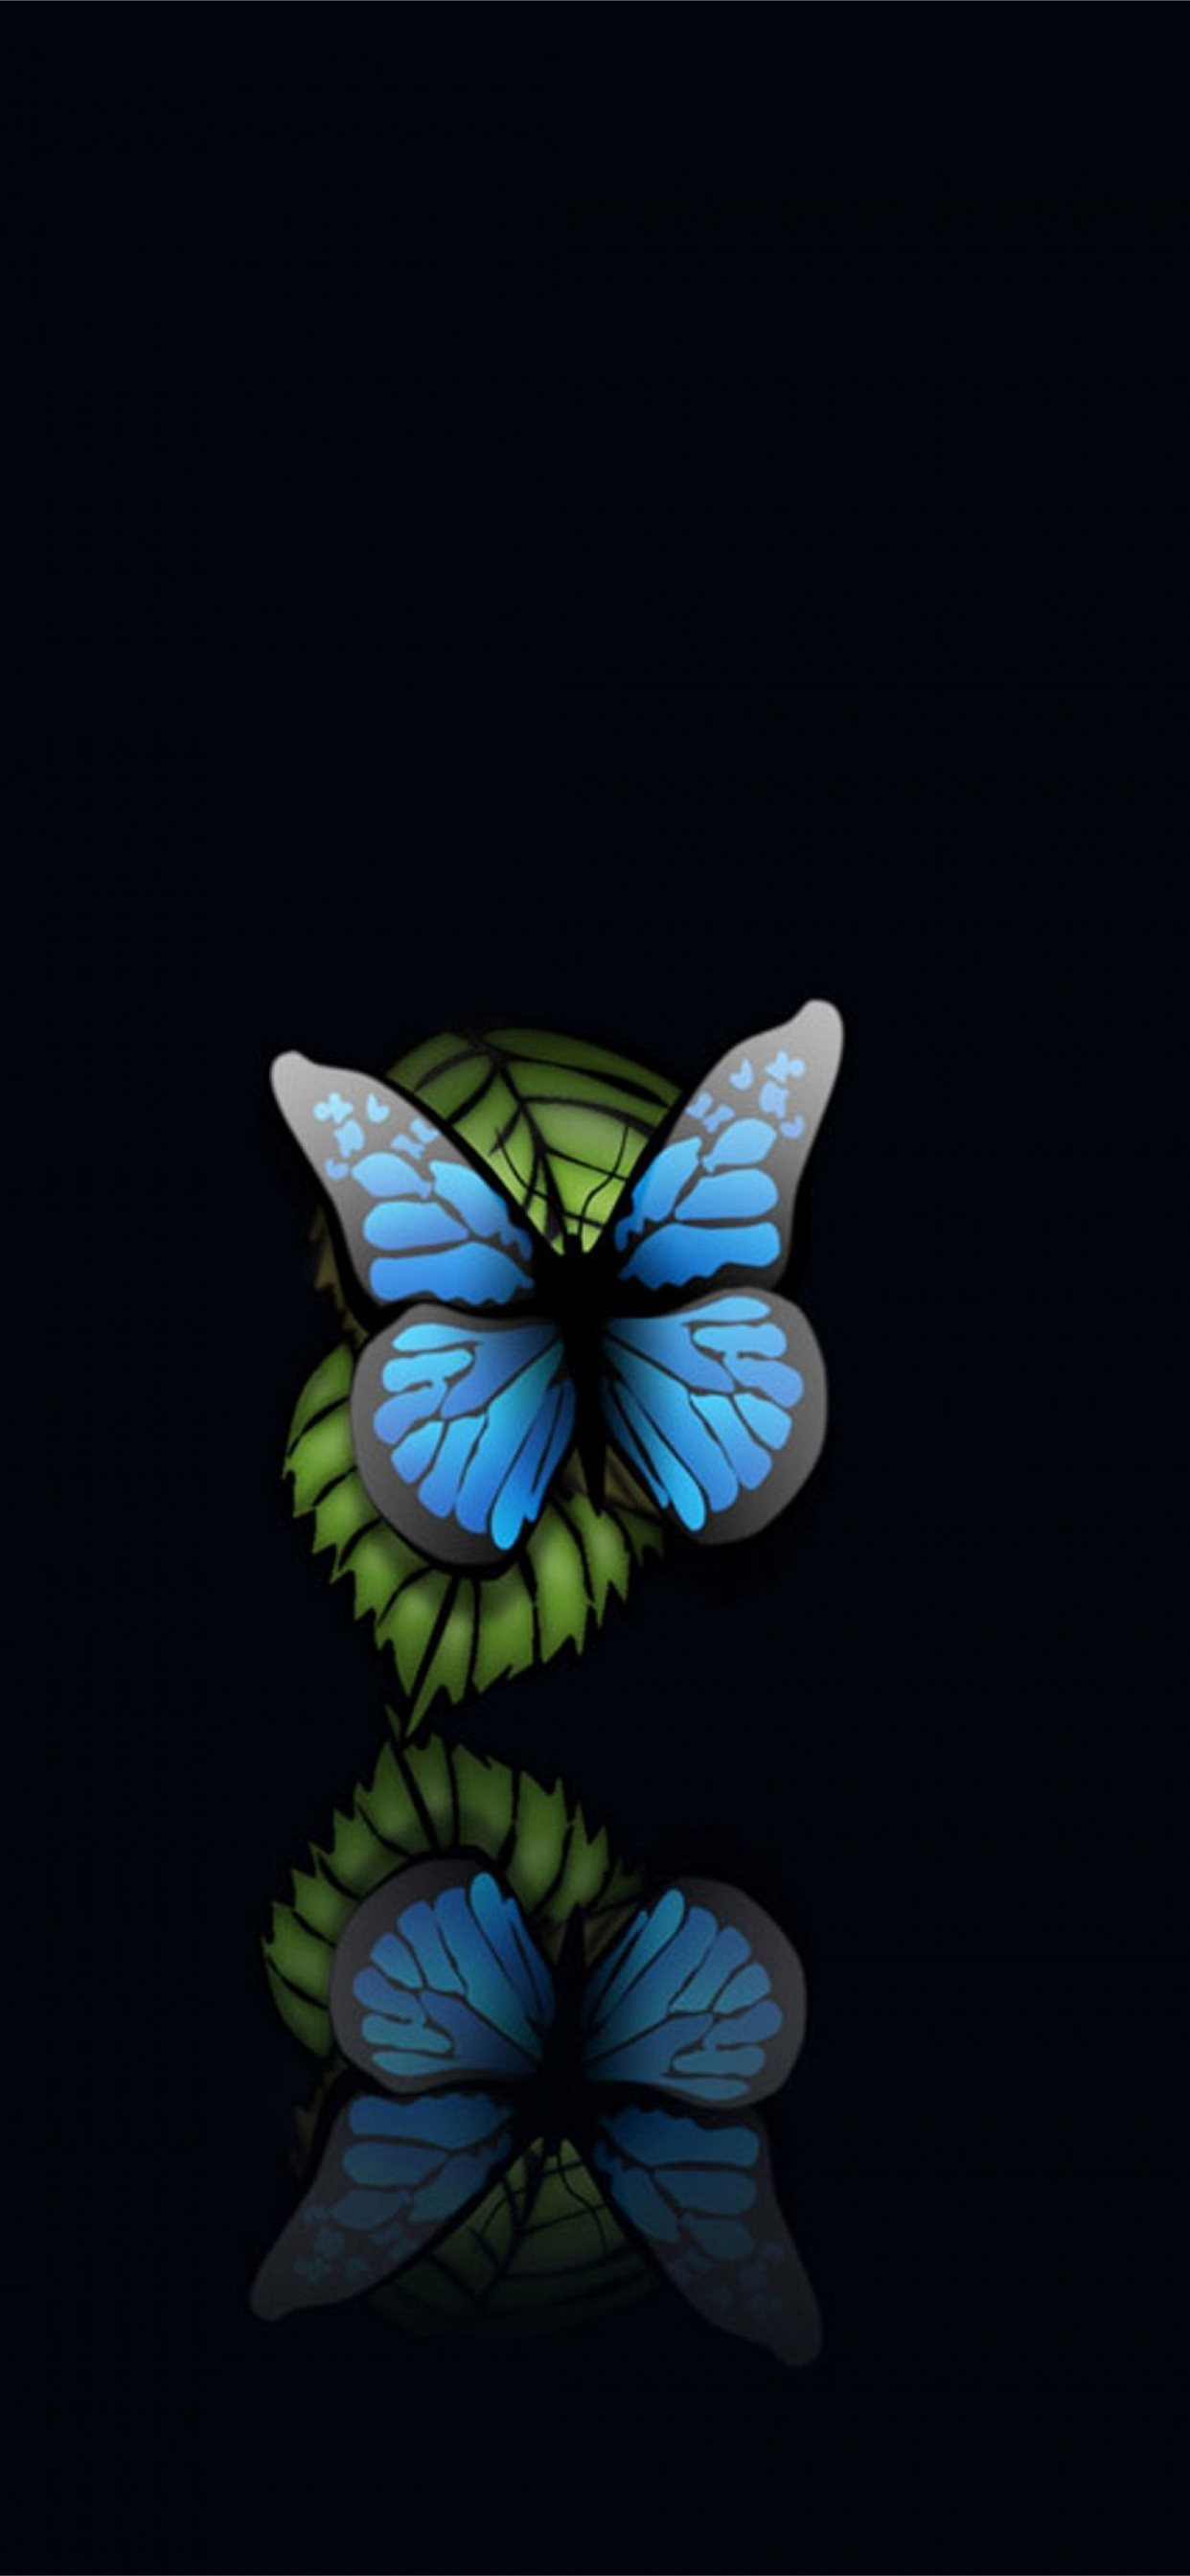 Free 75 Butterfly Hd On Play Iphone X Wallpapers Free Download